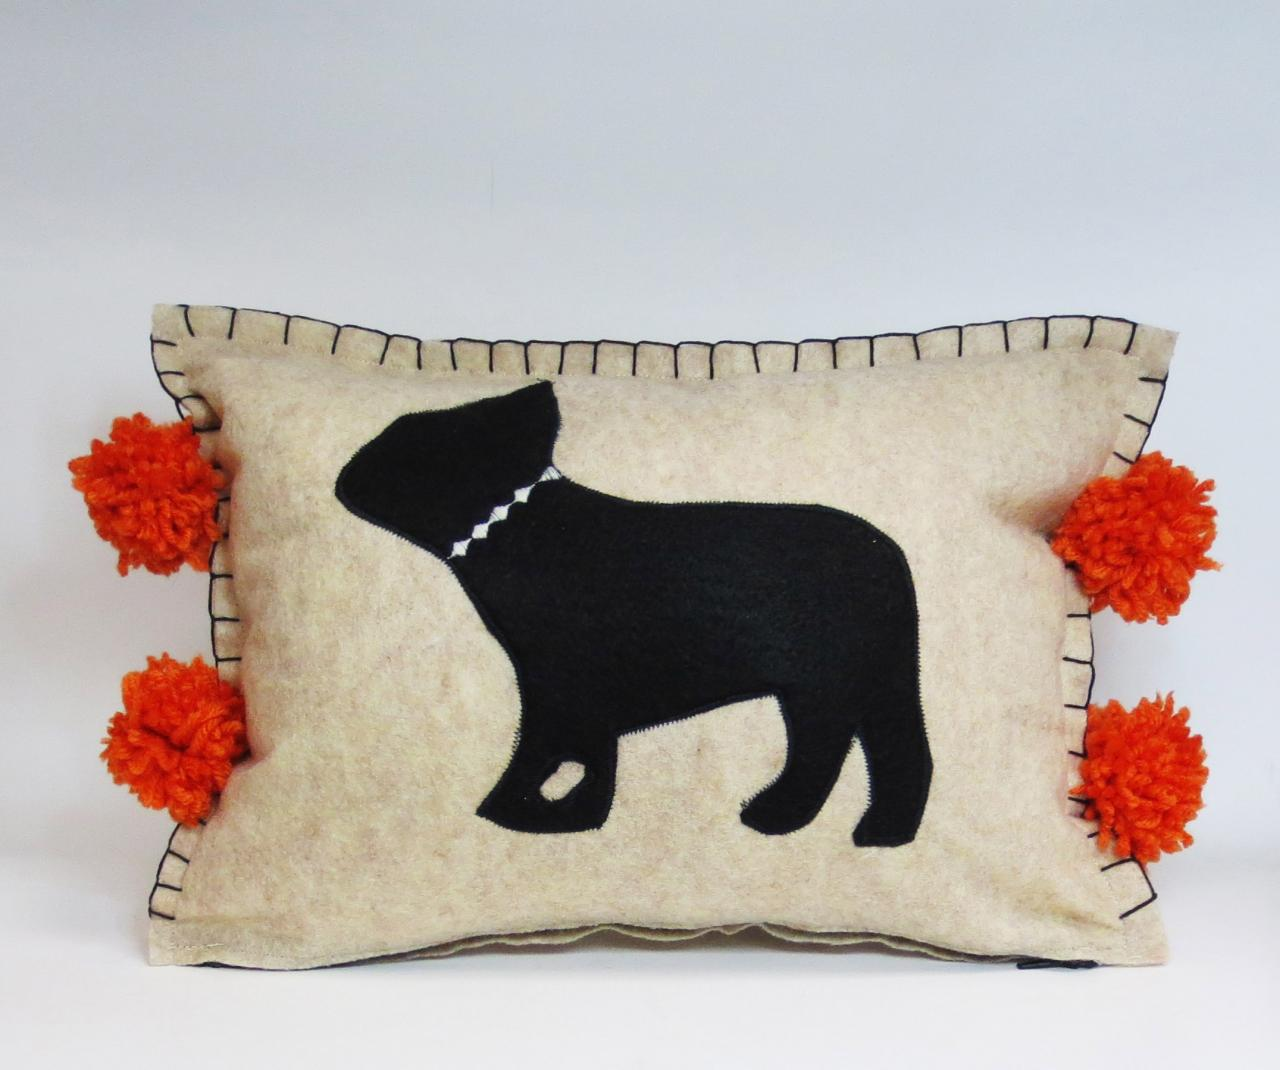 Beige Felt Pillow with Black Frenchie Silhouette and Pumpkin Orange Accents